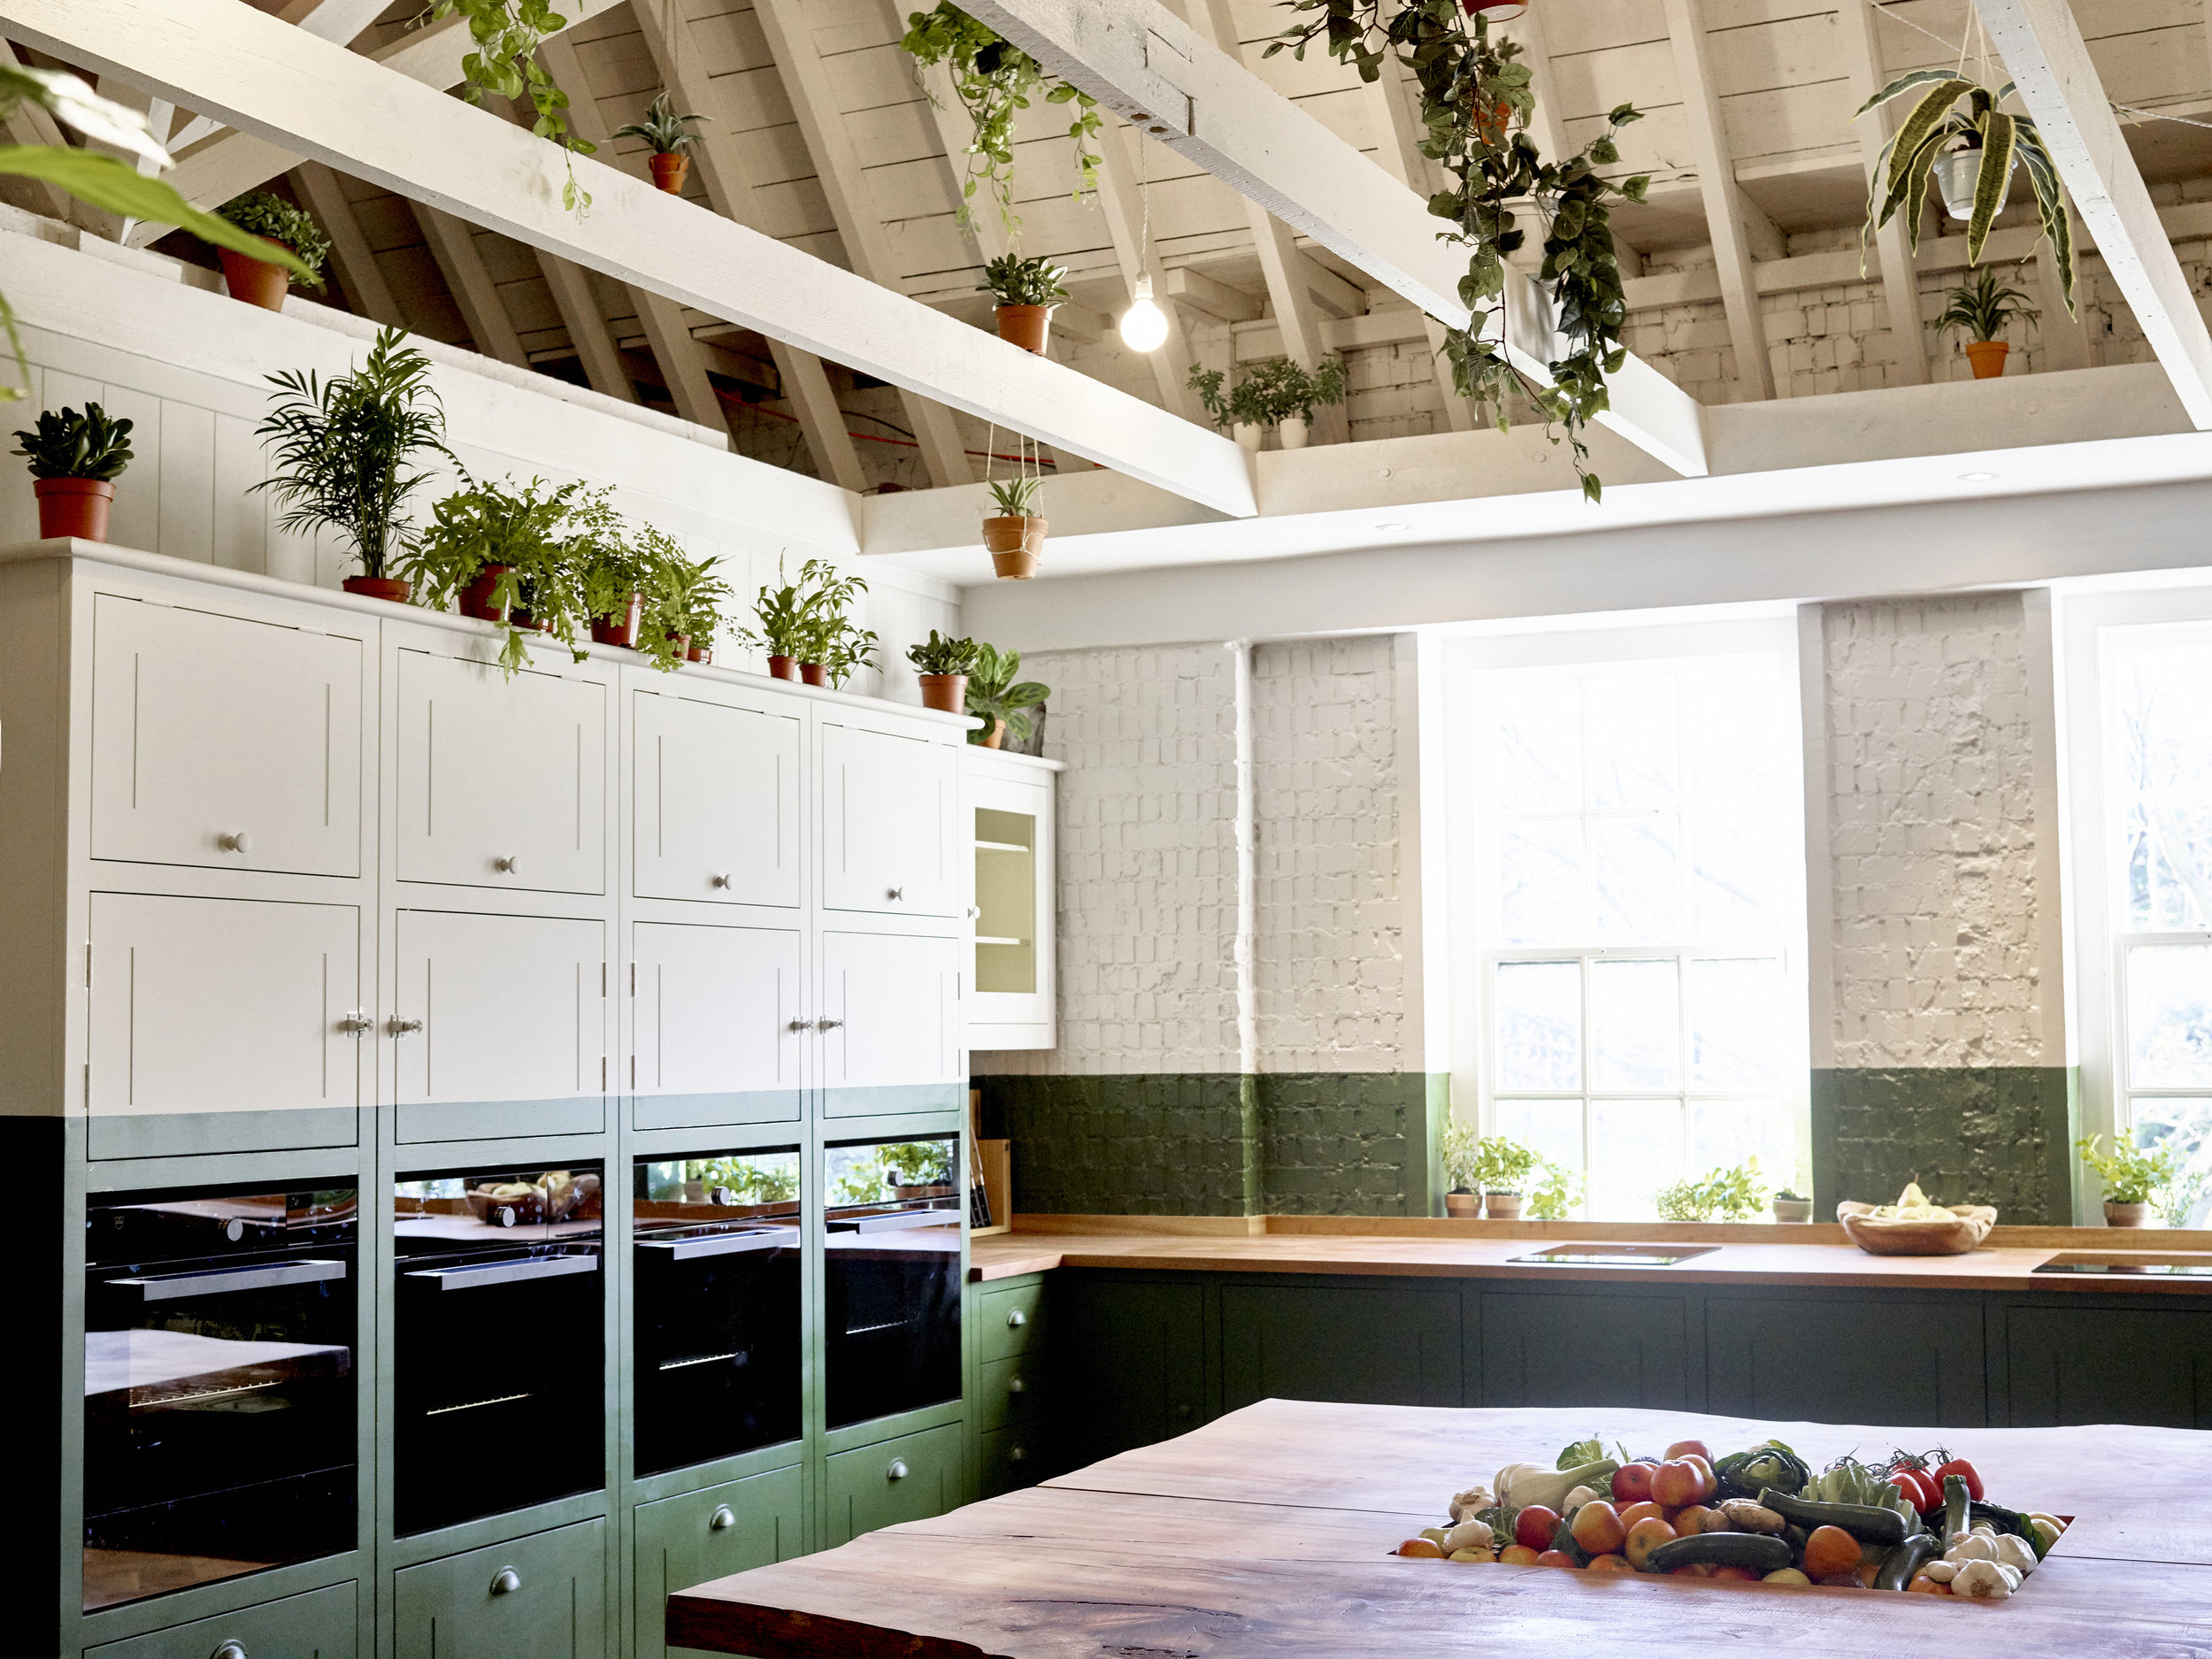 B&H Kitchen - cookery school and private dining room in Clerkenwell